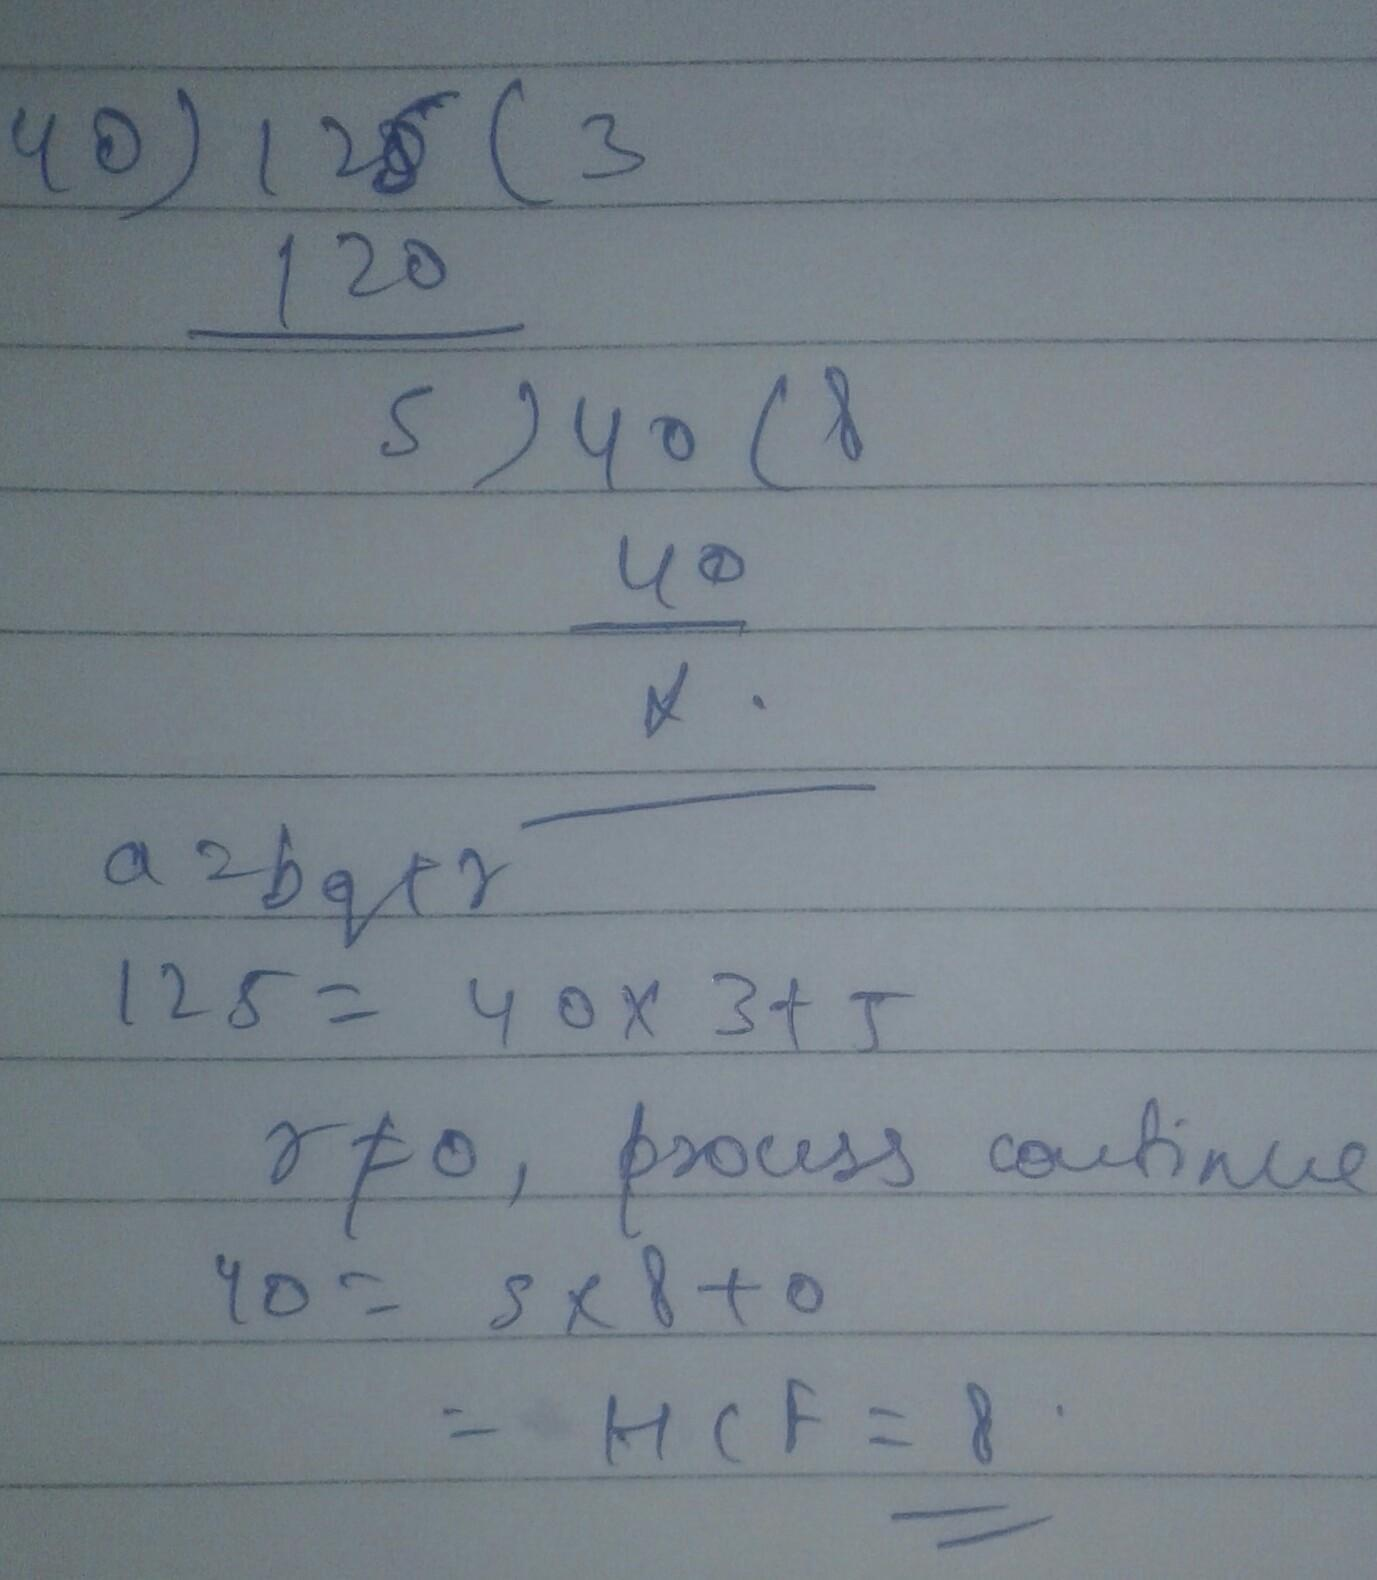 find the HCF of 40 and 125 by using Euclid division Lemma - Brainly in